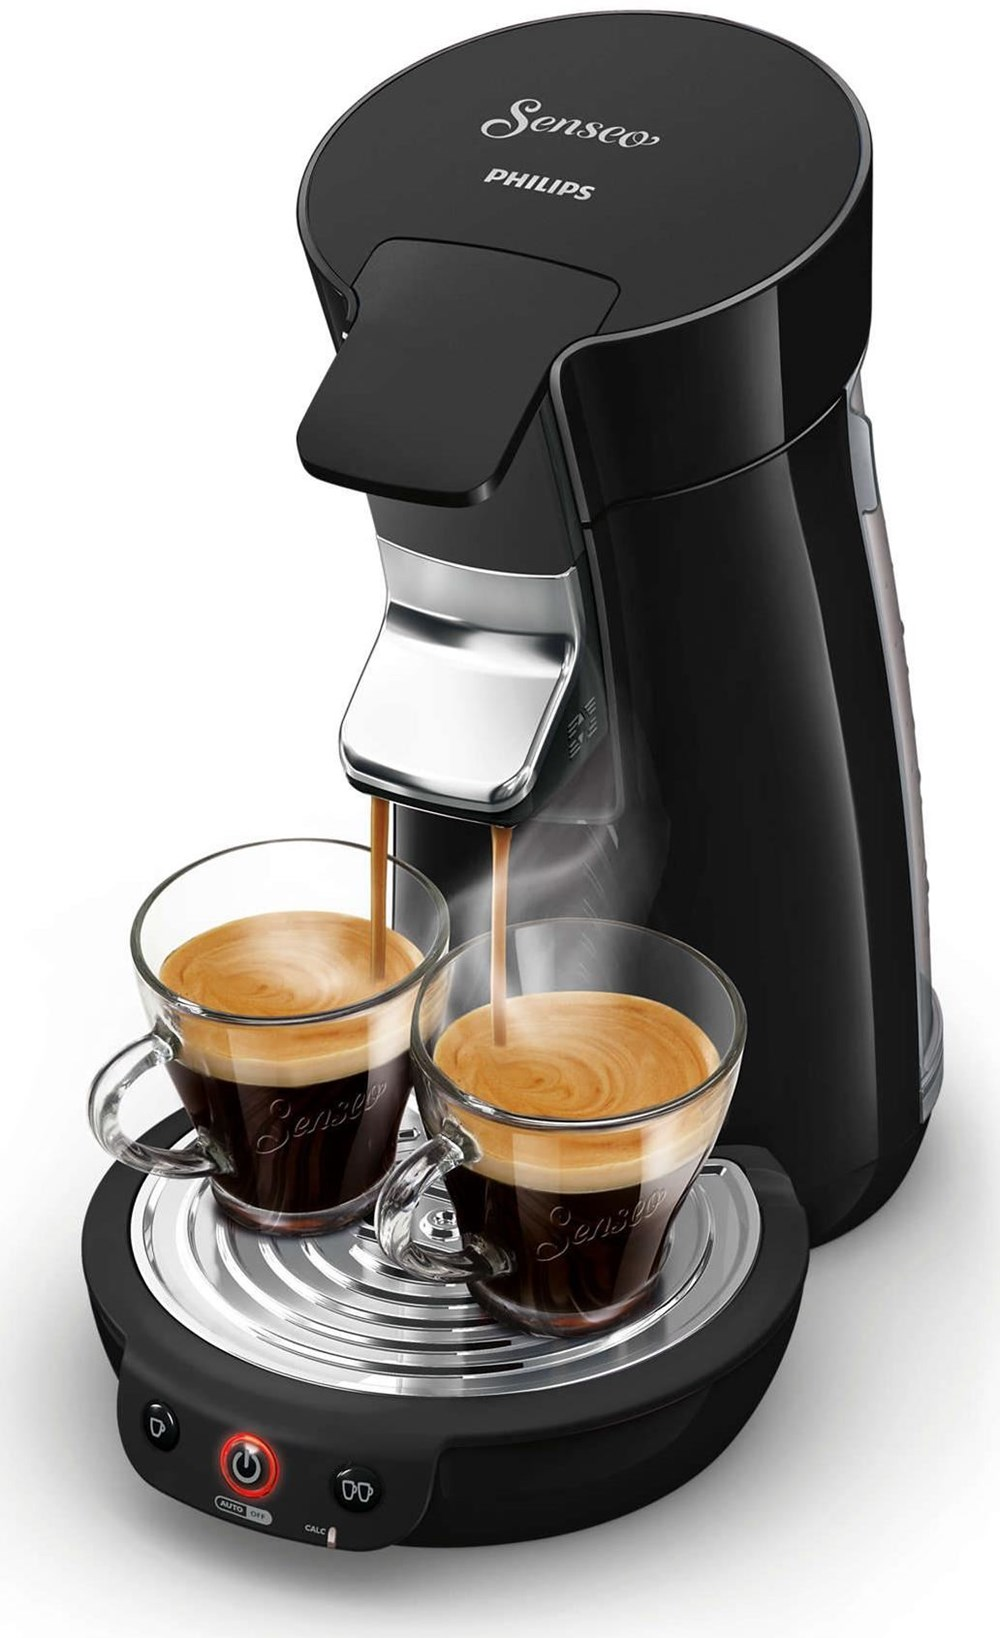 philips senseo viva caf coffee pod machine hd7829 black. Black Bedroom Furniture Sets. Home Design Ideas